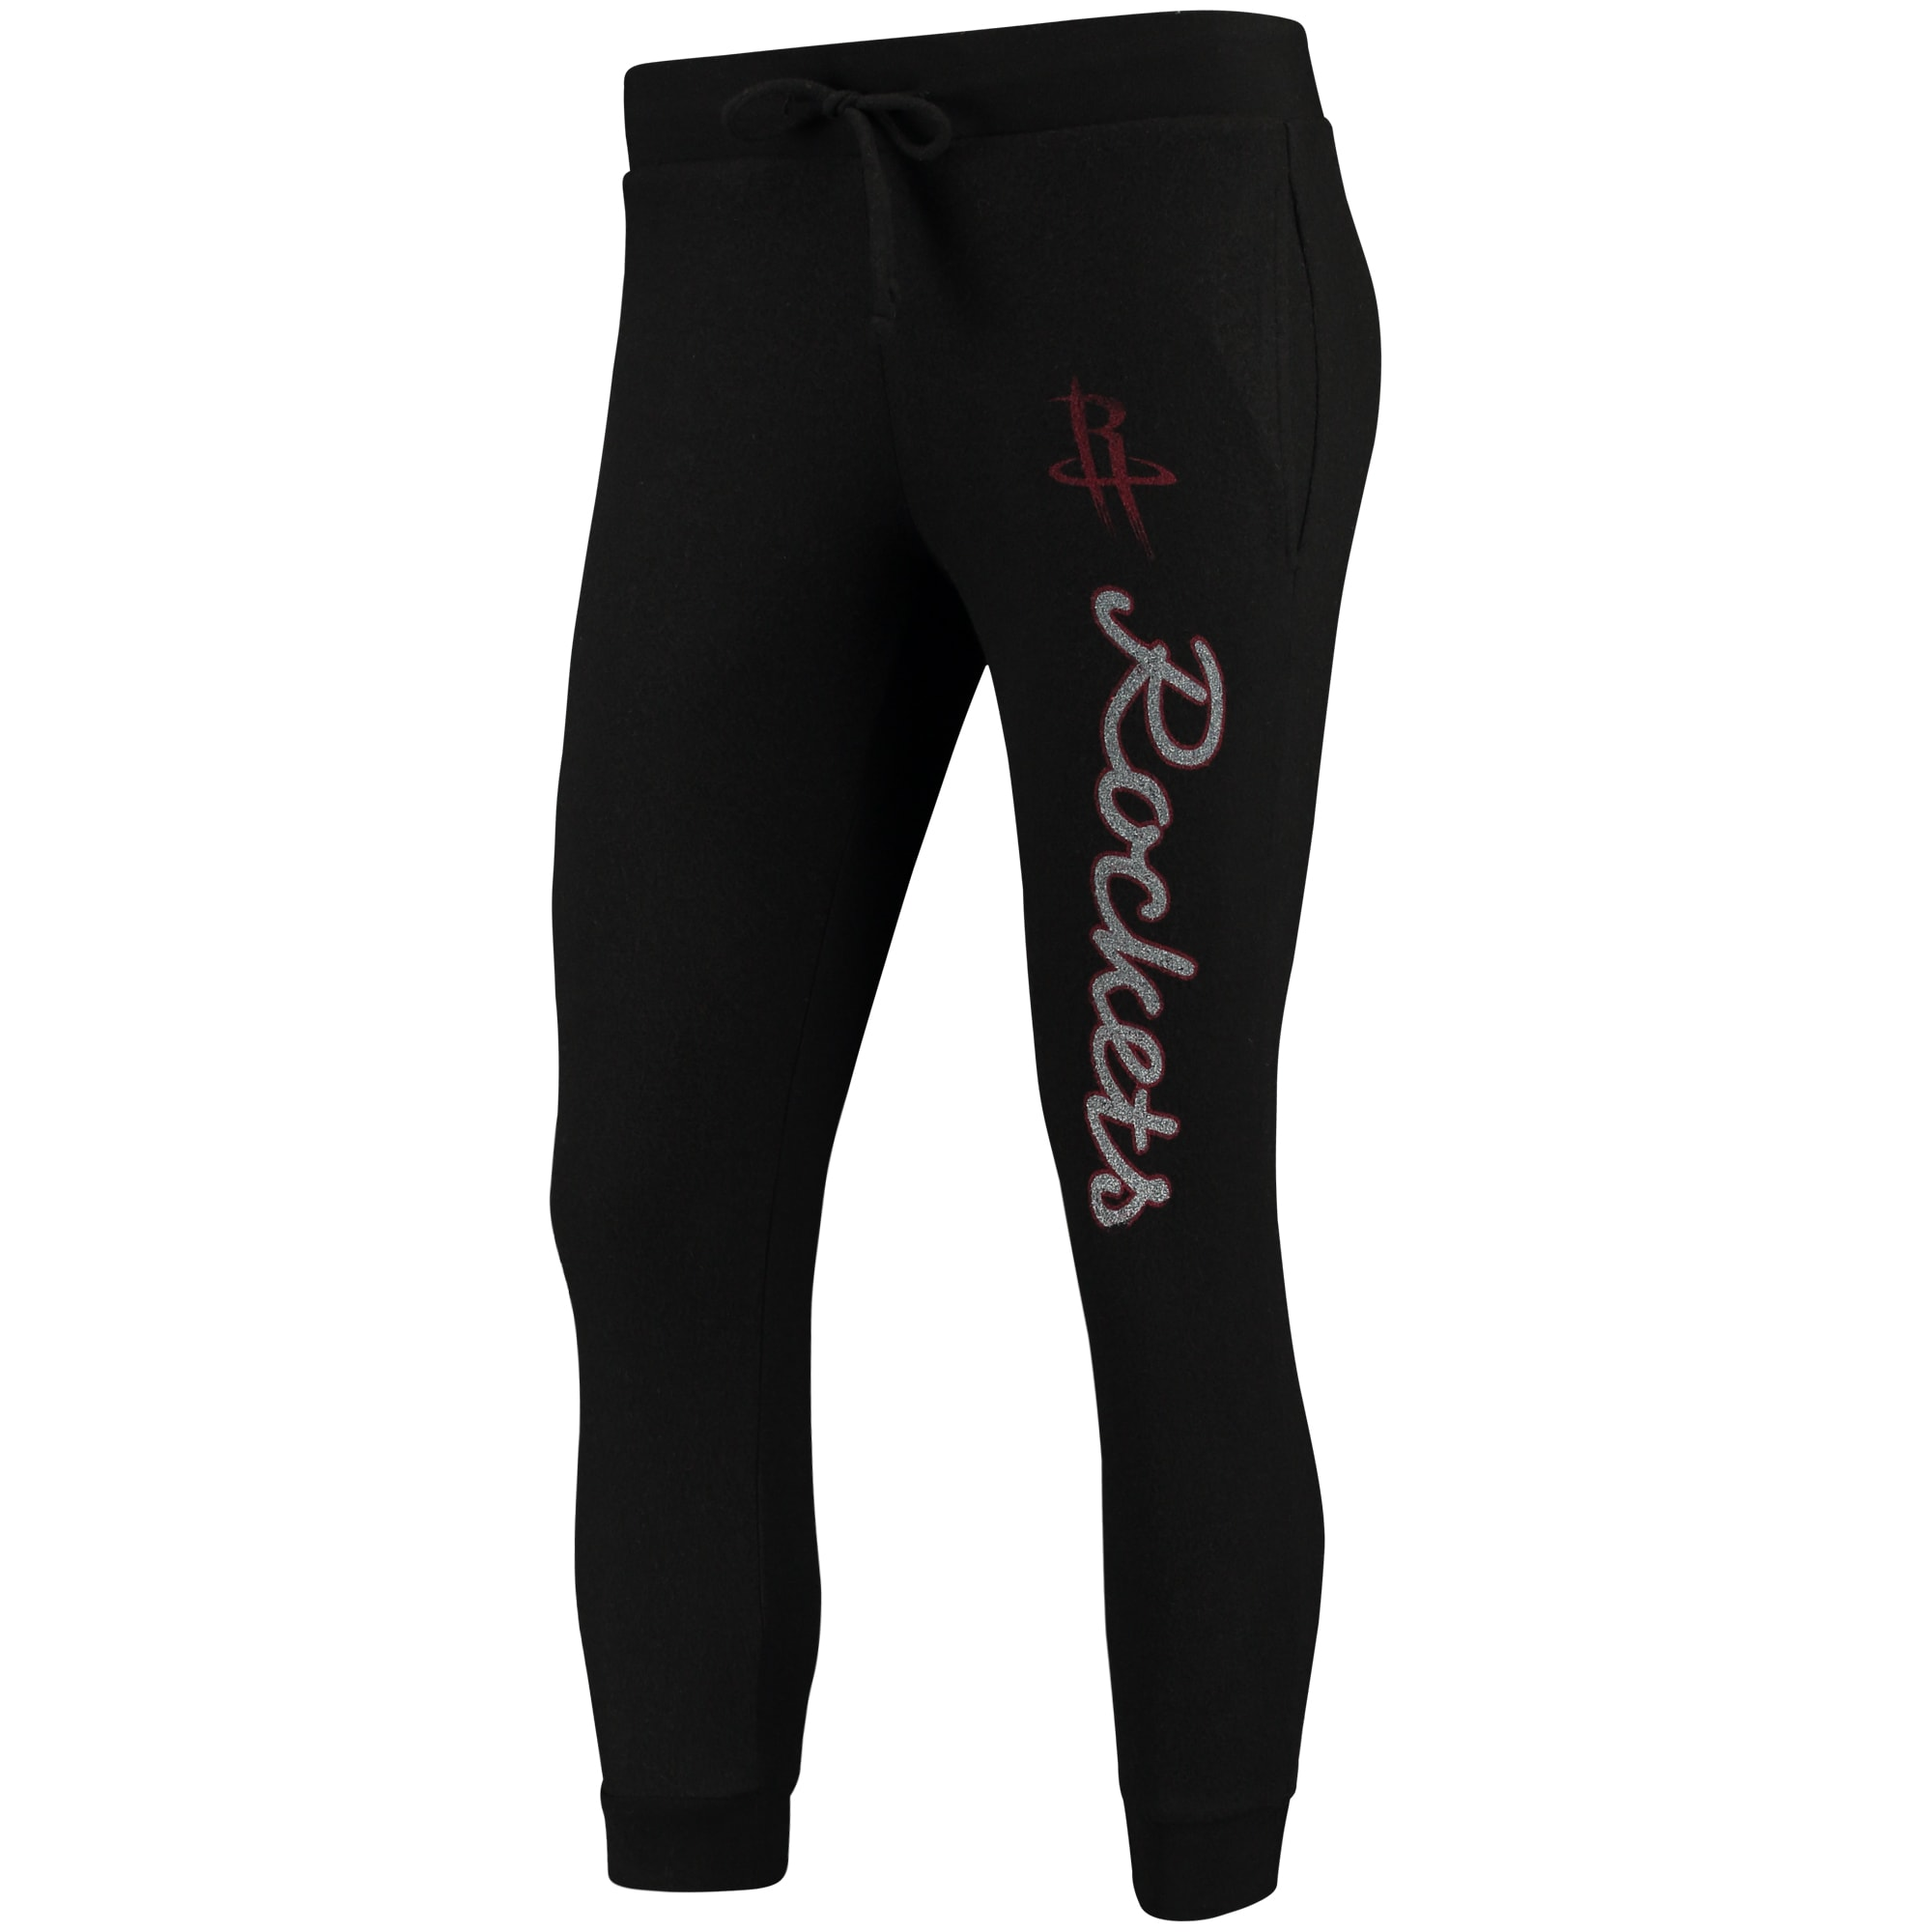 Houston Rockets Fanatics Branded Women's Steadfast Cozy Jogger Pant - Black